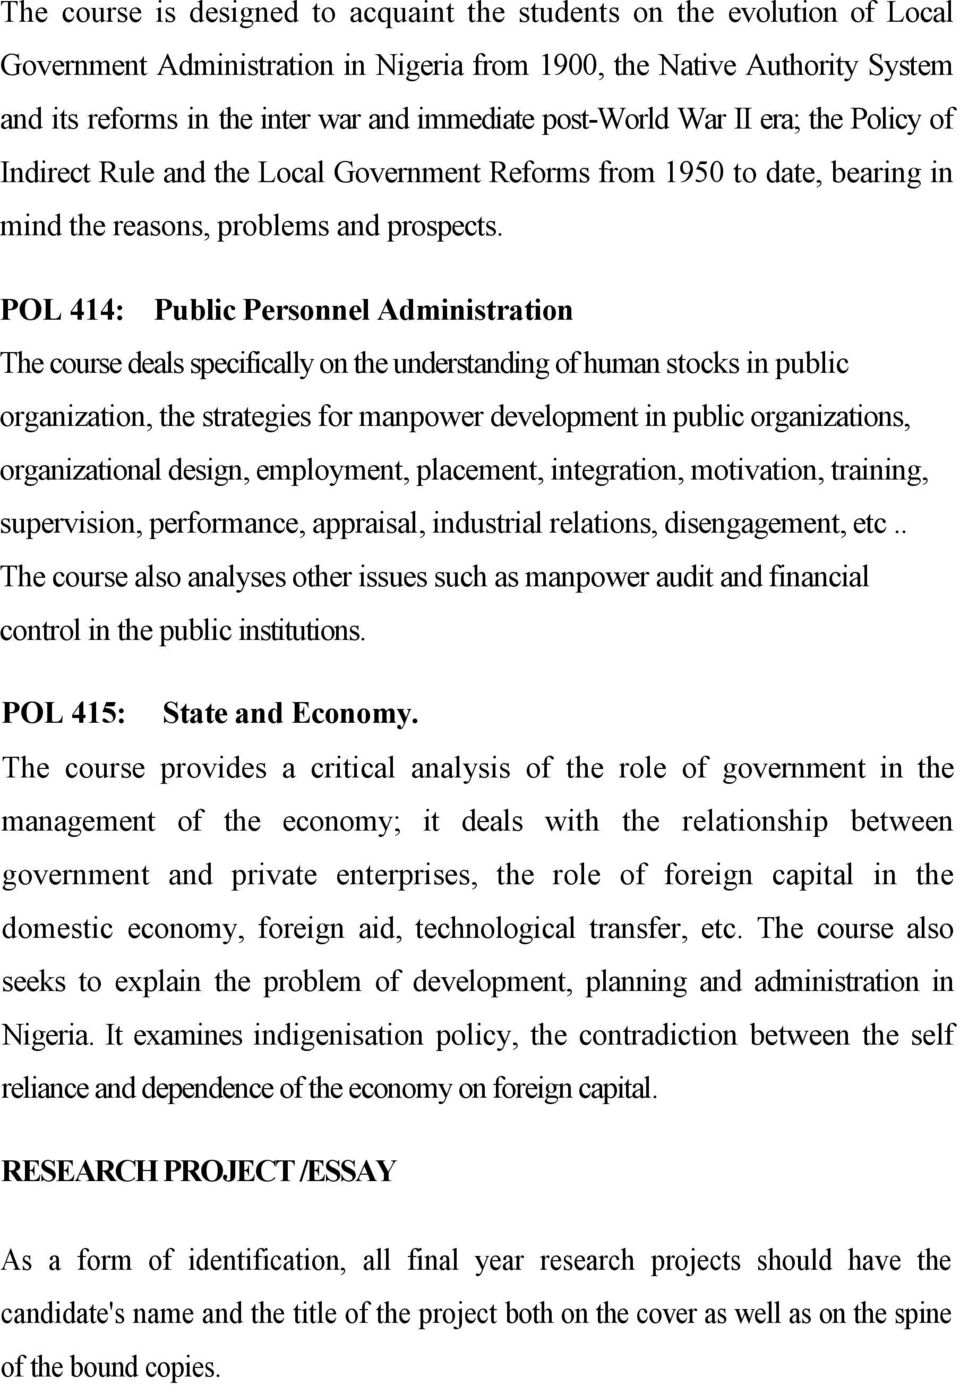 POL 414: Public Personnel Administration The course deals specifically on the understanding of human stocks in public organization, the strategies for manpower development in public organizations,